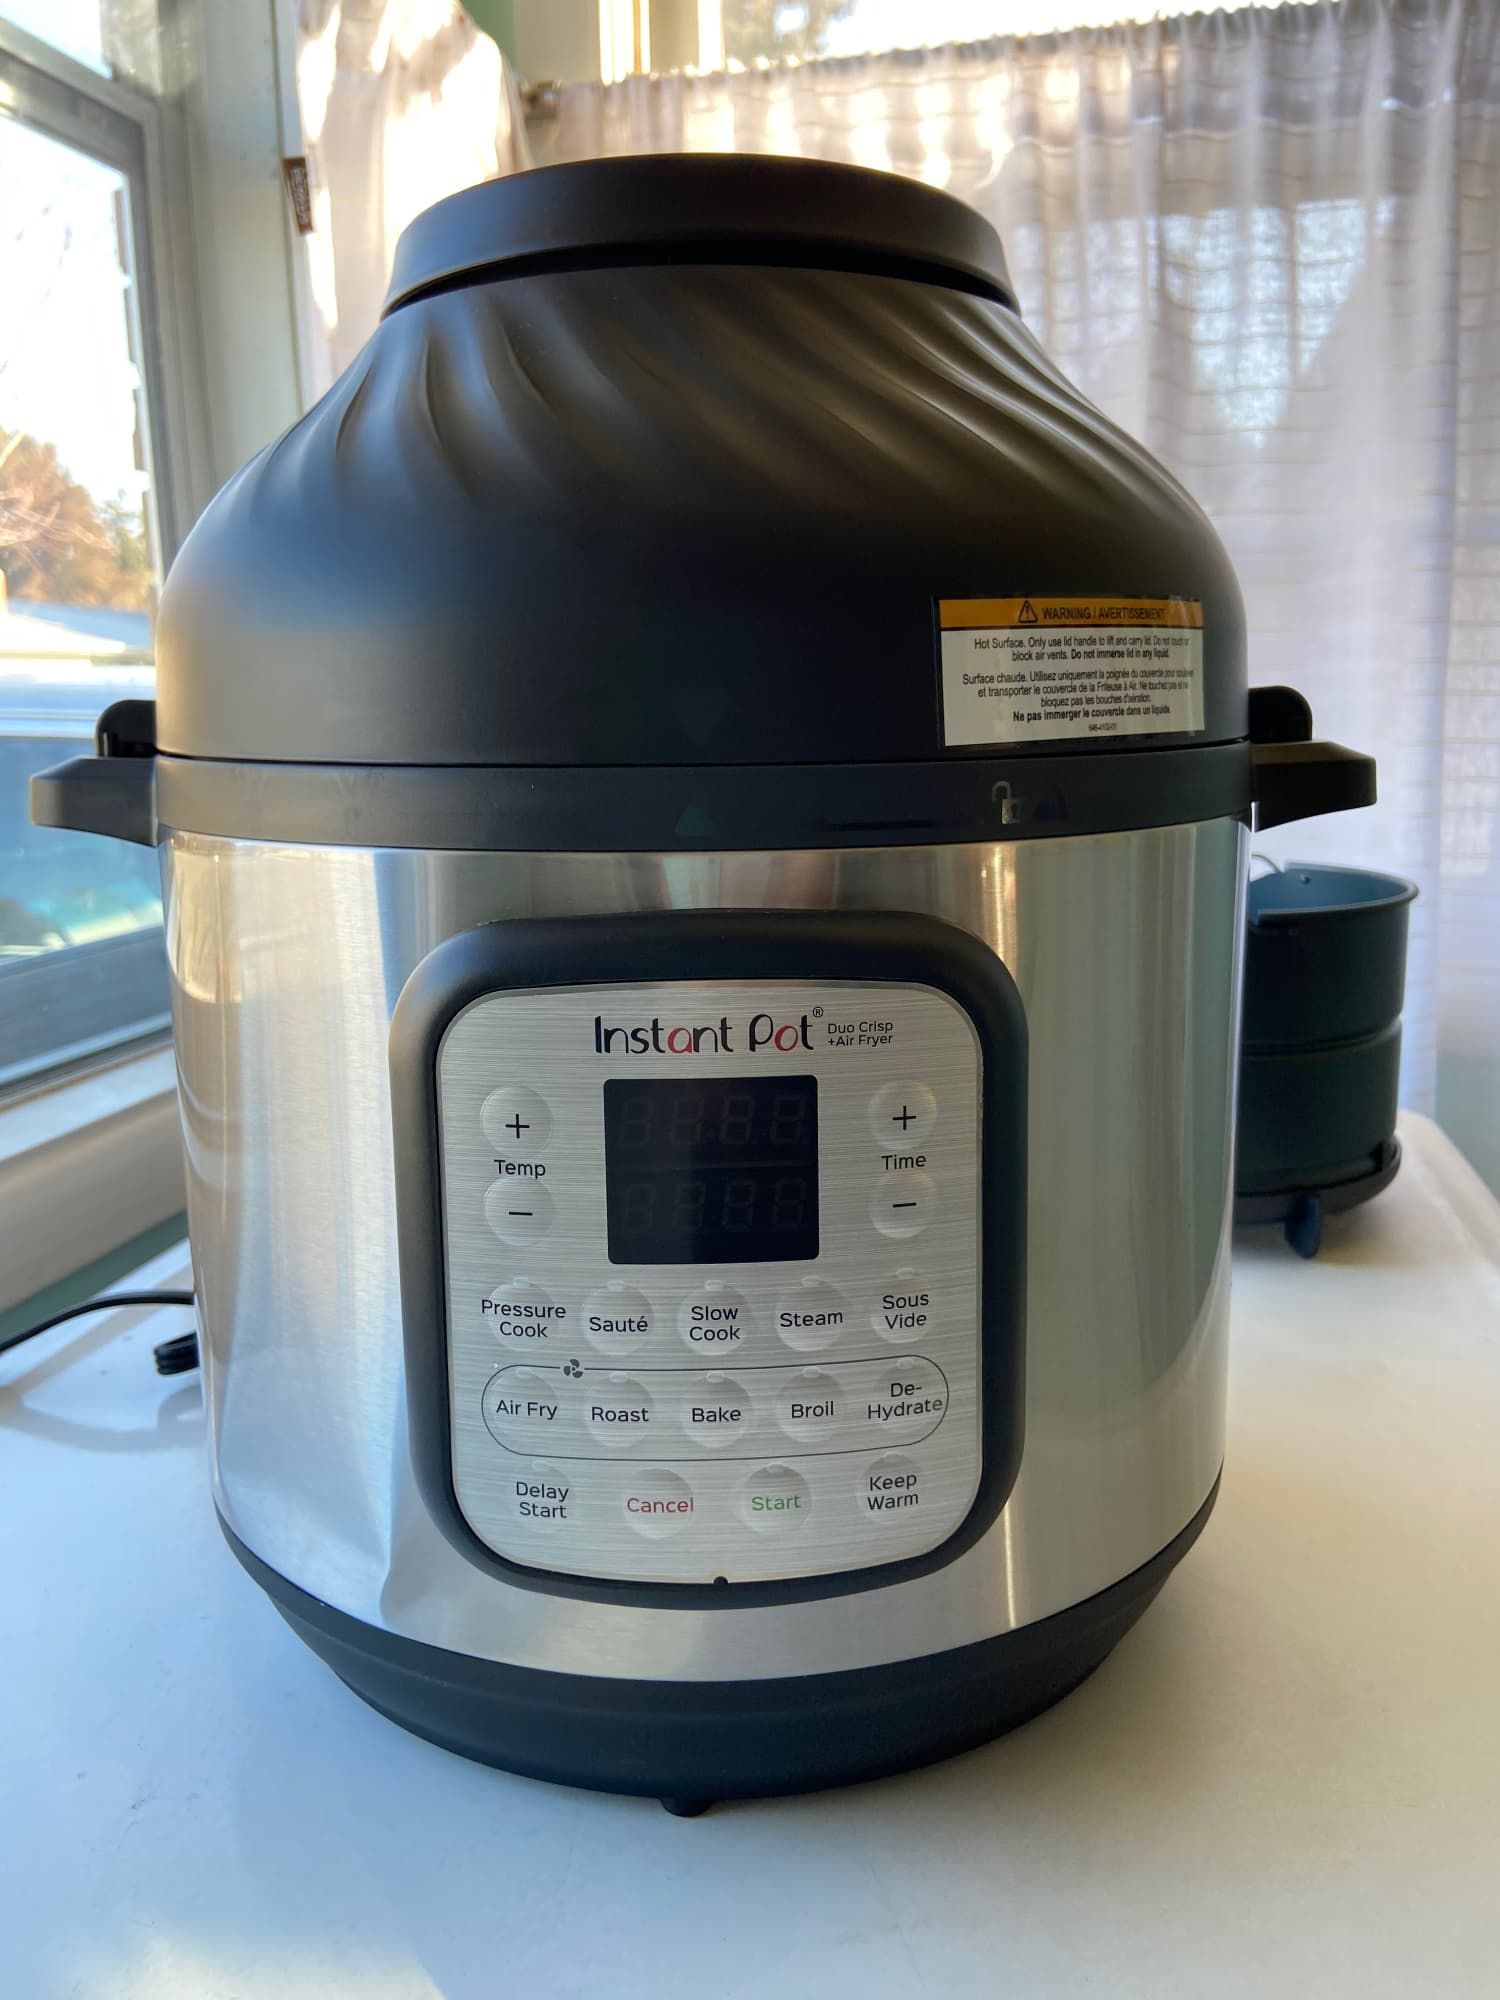 Instant Pot Makes a Multi-Cooker That's ALSO an Air Fryer — And It's My New Favorite Small Appliance